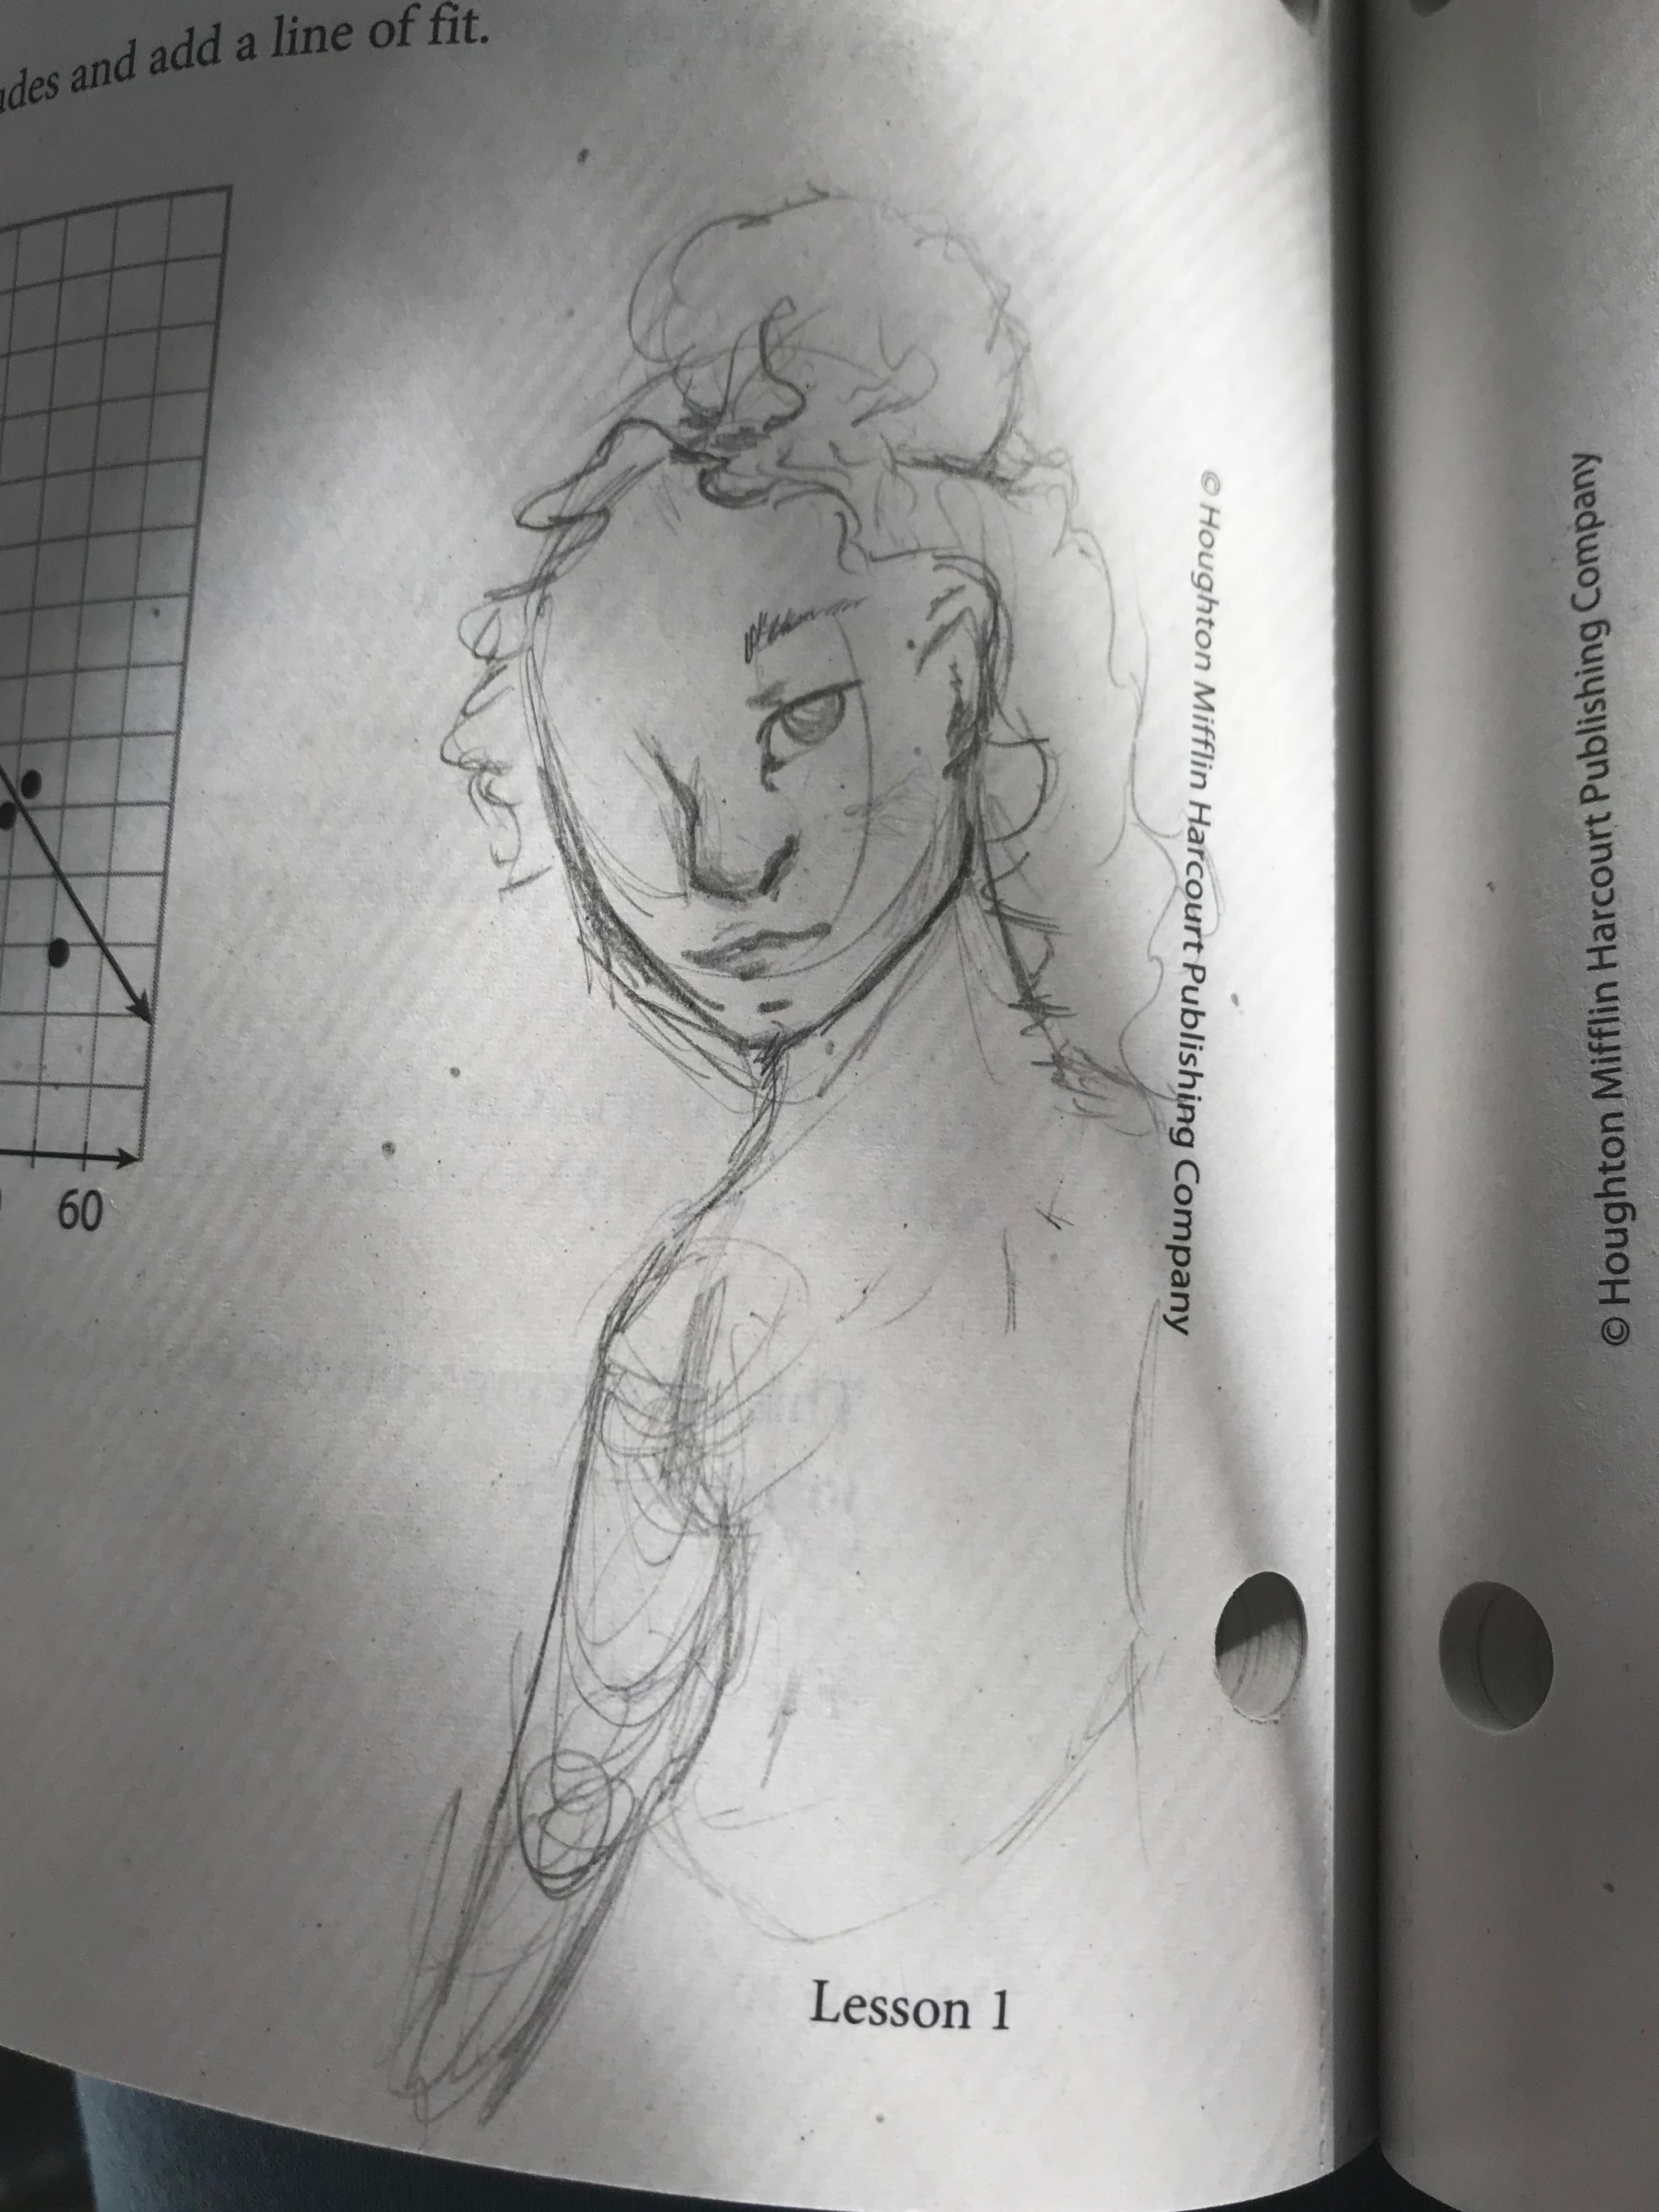 Doodle In Math Class Today So While I Was Gone Started Doodling Humans Idk Please Give Me Constructive Criticism Art By Orange Sherbert